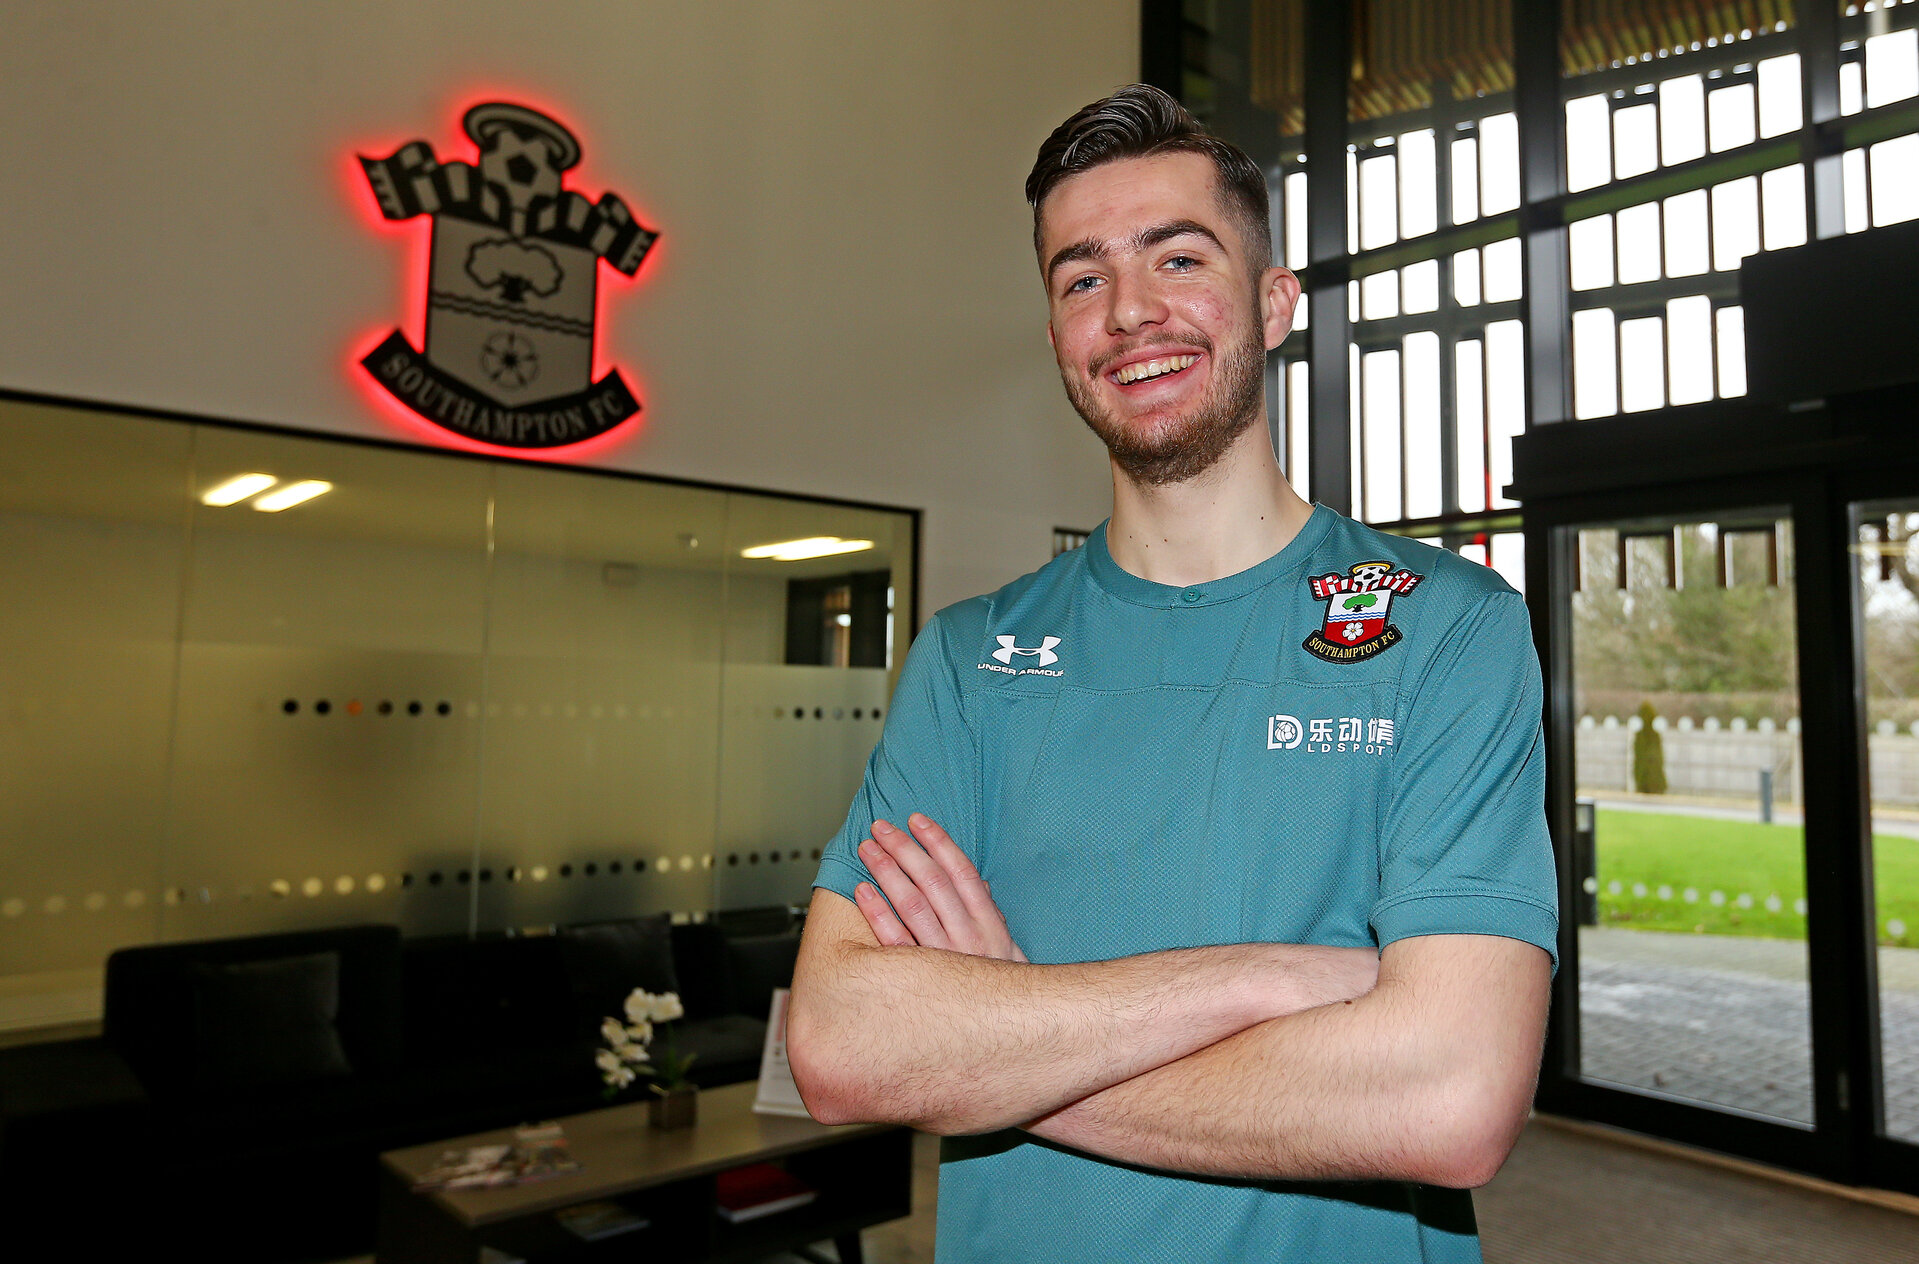 SOUTHAMPTON, ENGLAND - JANUARY 24: Academy goalkeeper Kingsley Latham signs a new contract, pictured at the Staplewood Campus on January 24, 2020 in Southampton, England. (Photo by Matt Watson/Southampton FC via Getty Images)